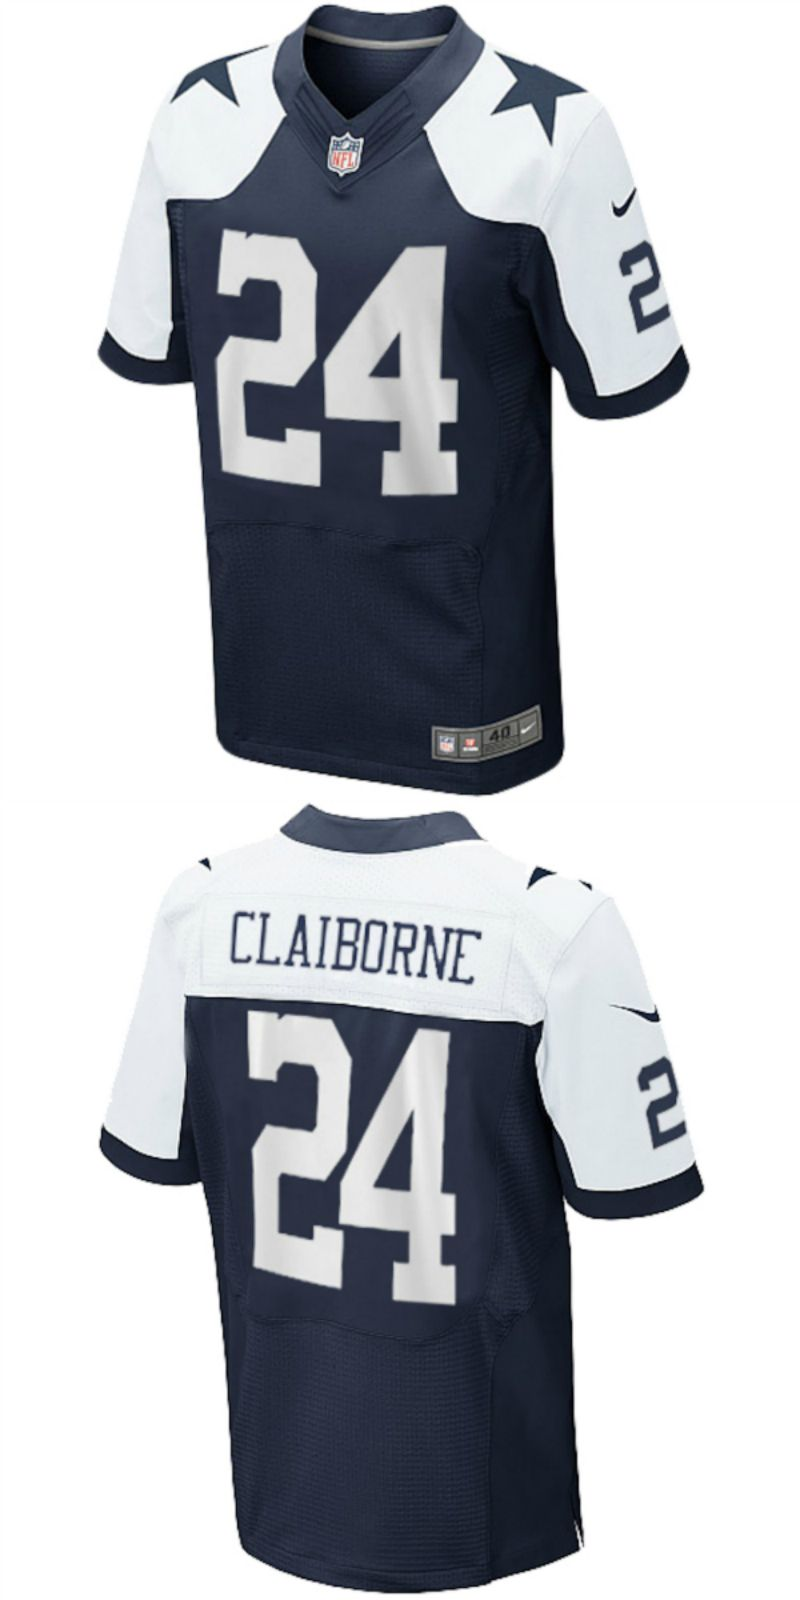 cheaper 627c3 76bb9 UP TO 70% OFF. Men's NFL Pro Line Dallas Cowboys Charles ...